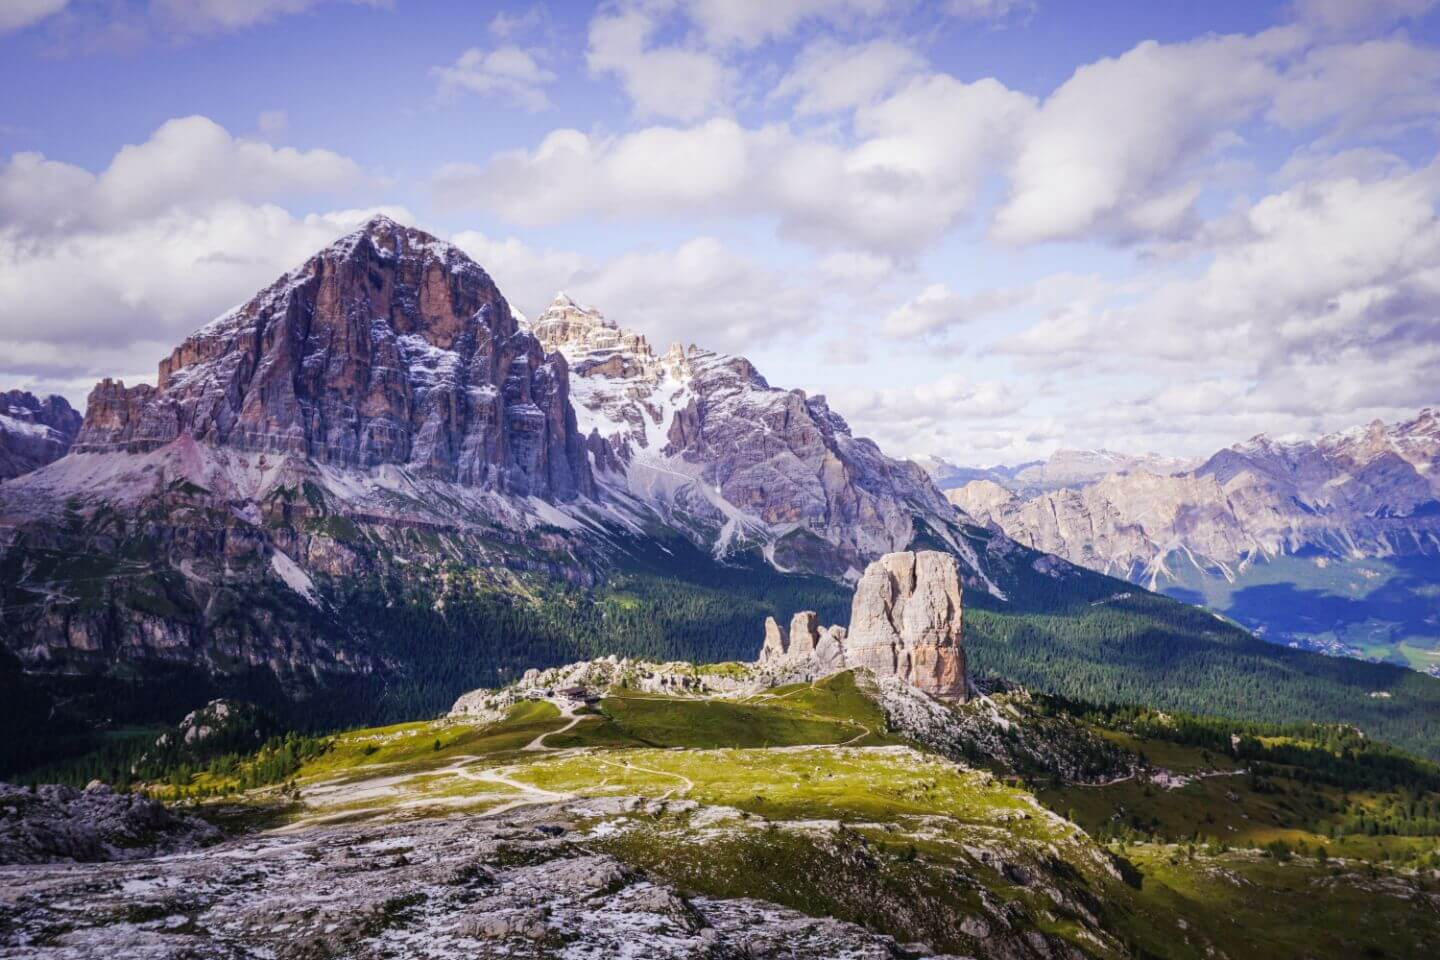 Dolomites Travel Guide - Everything you need to know about visiting the Dolomites, Italy